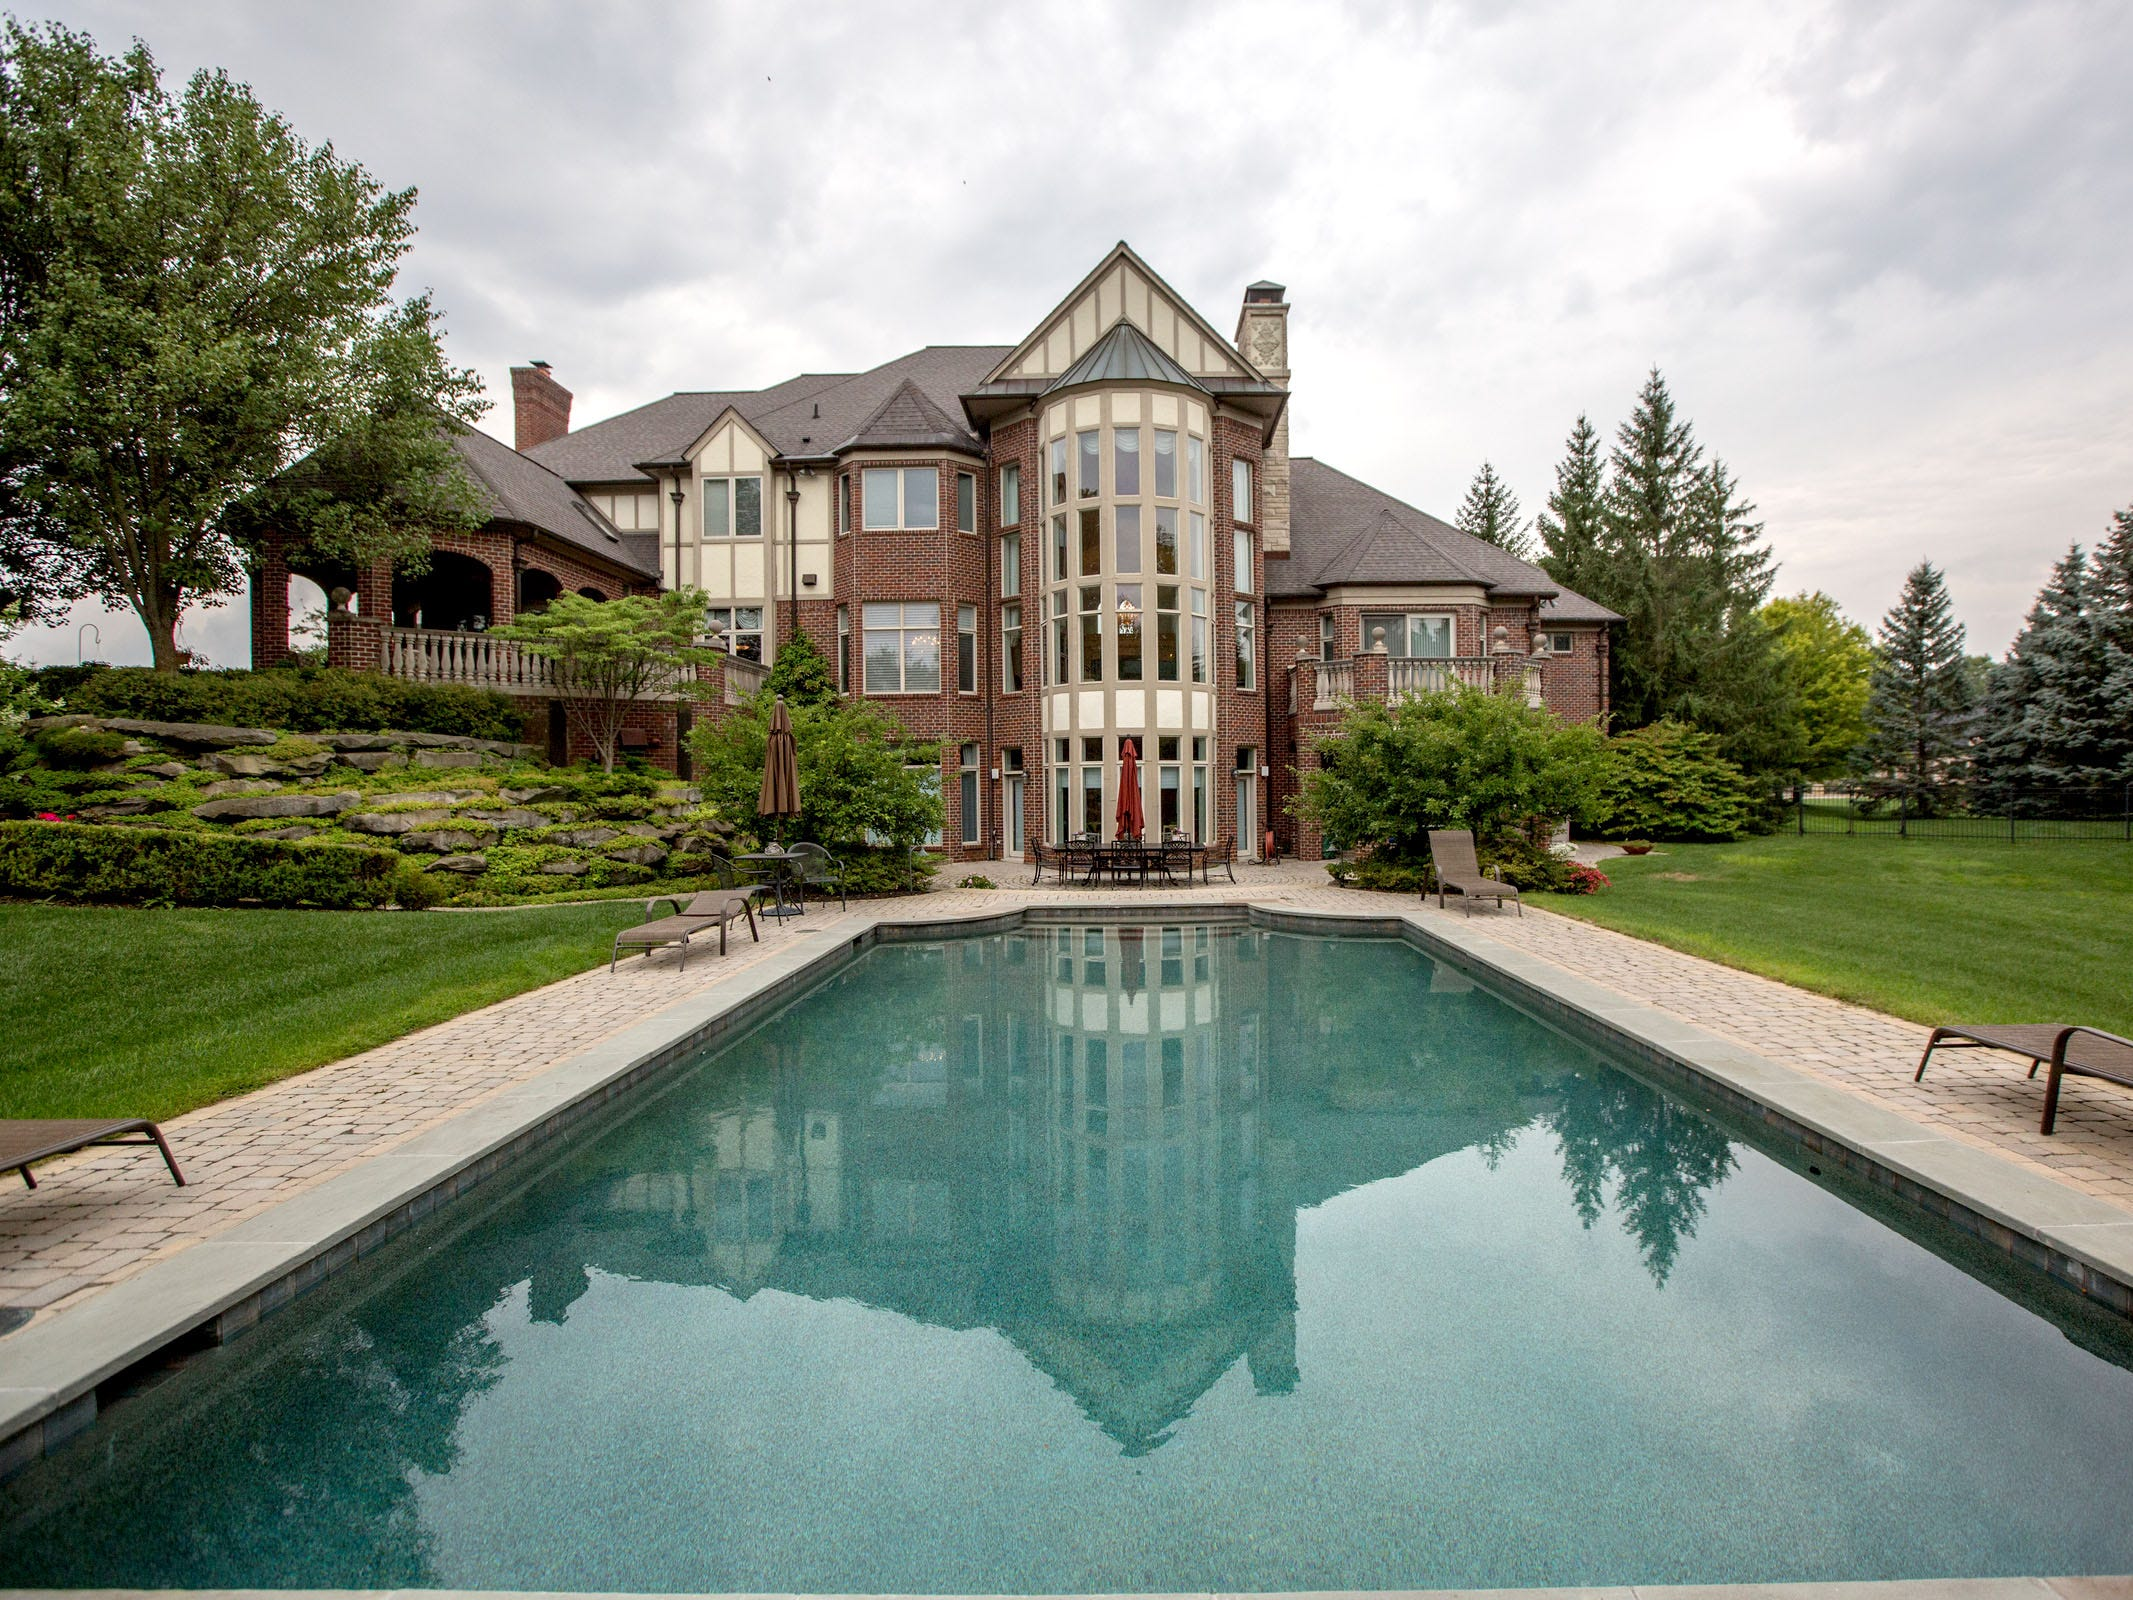 Belgian brick surrounds the pool. At the main level of the house, large brick terraces are ringed with stone balustrades.